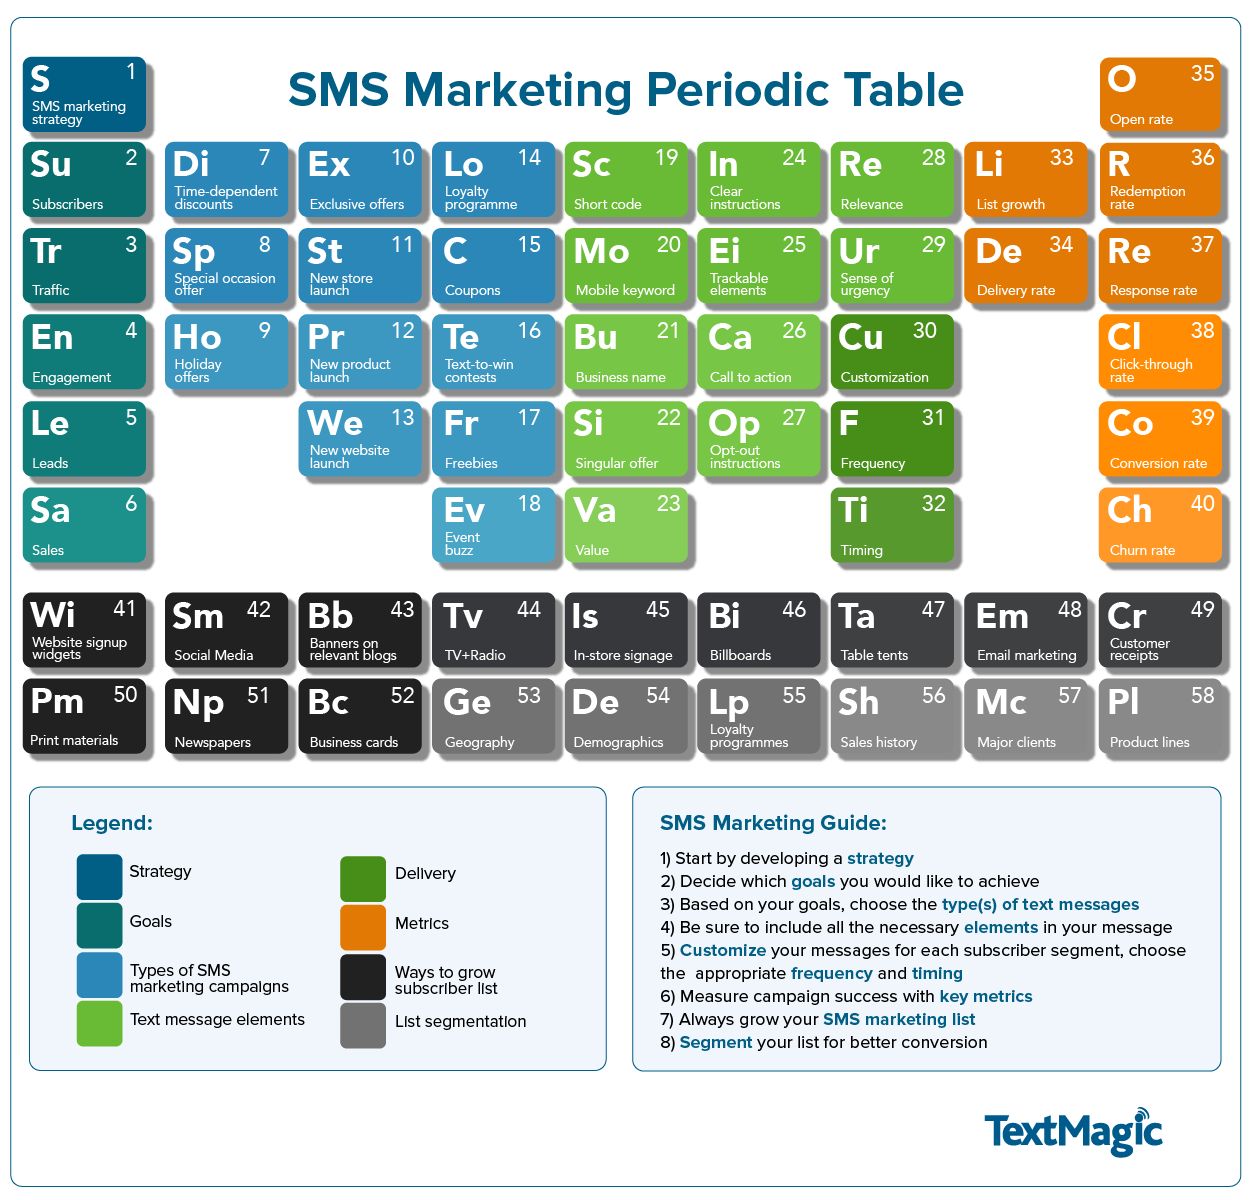 SMS Marketing Periodic Table